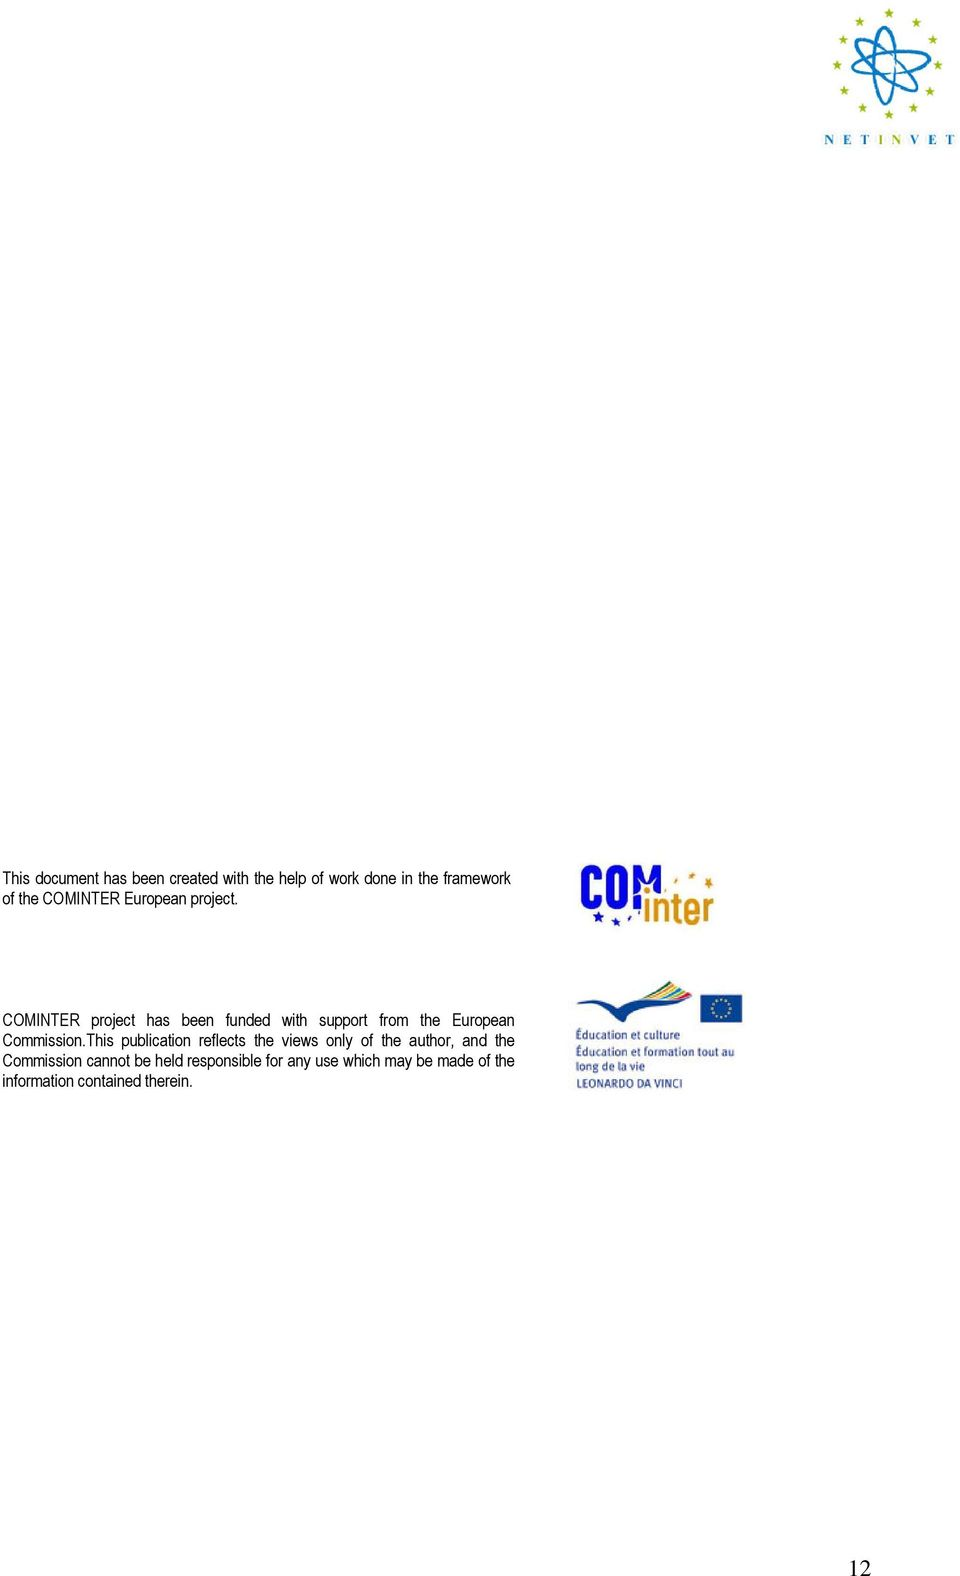 COMINTER project has been funded with support from the European Commission.